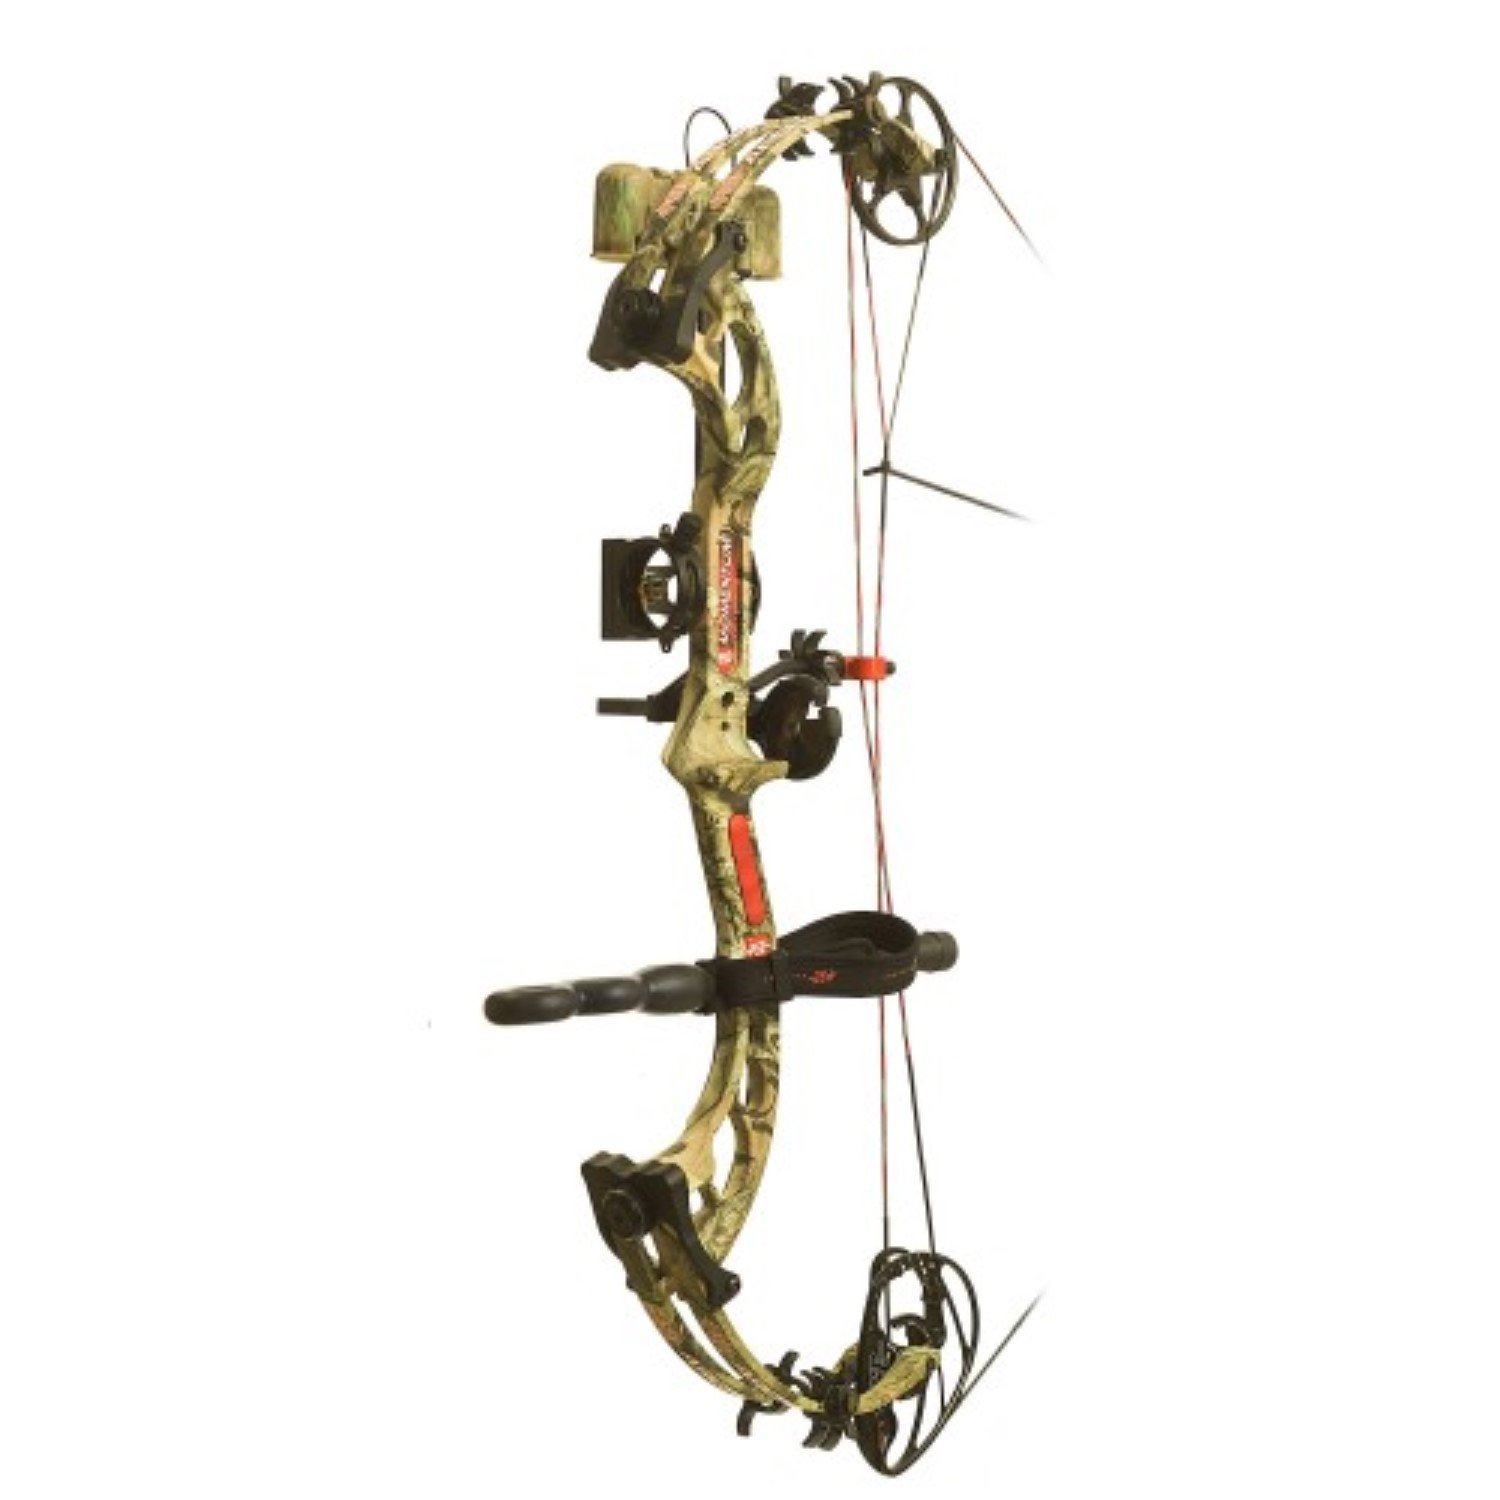 Amazon com : PSE Ready To Shoot Momentum Bow Package with